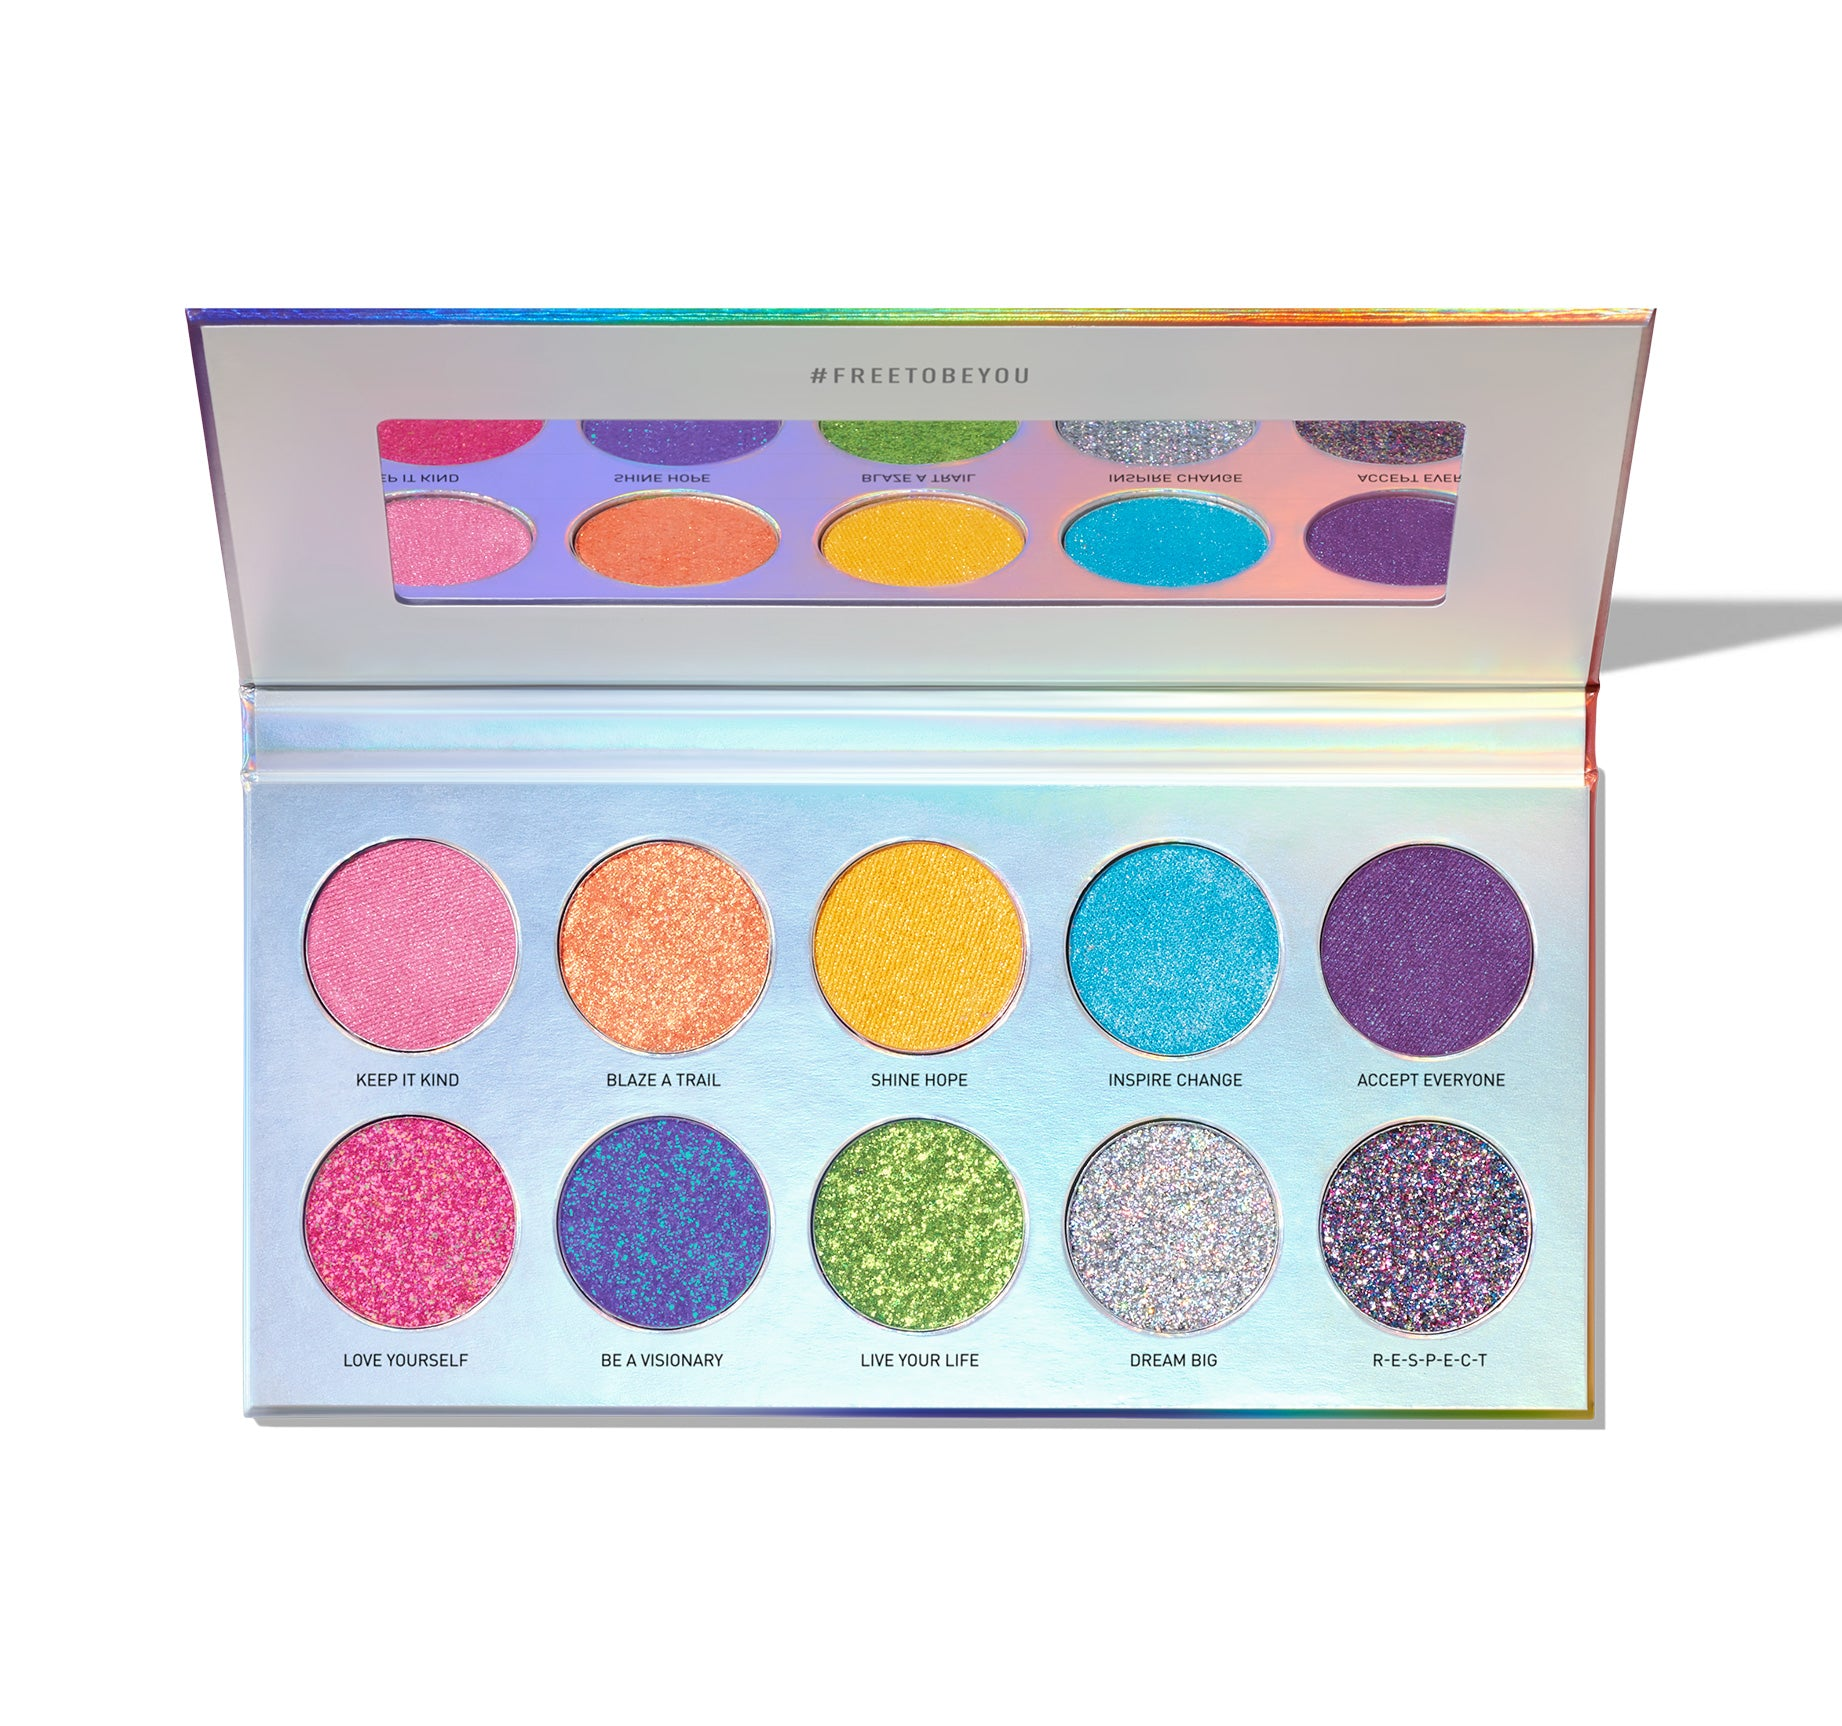 10G GLSEN UP ARTISTRY PALETTE, view larger image